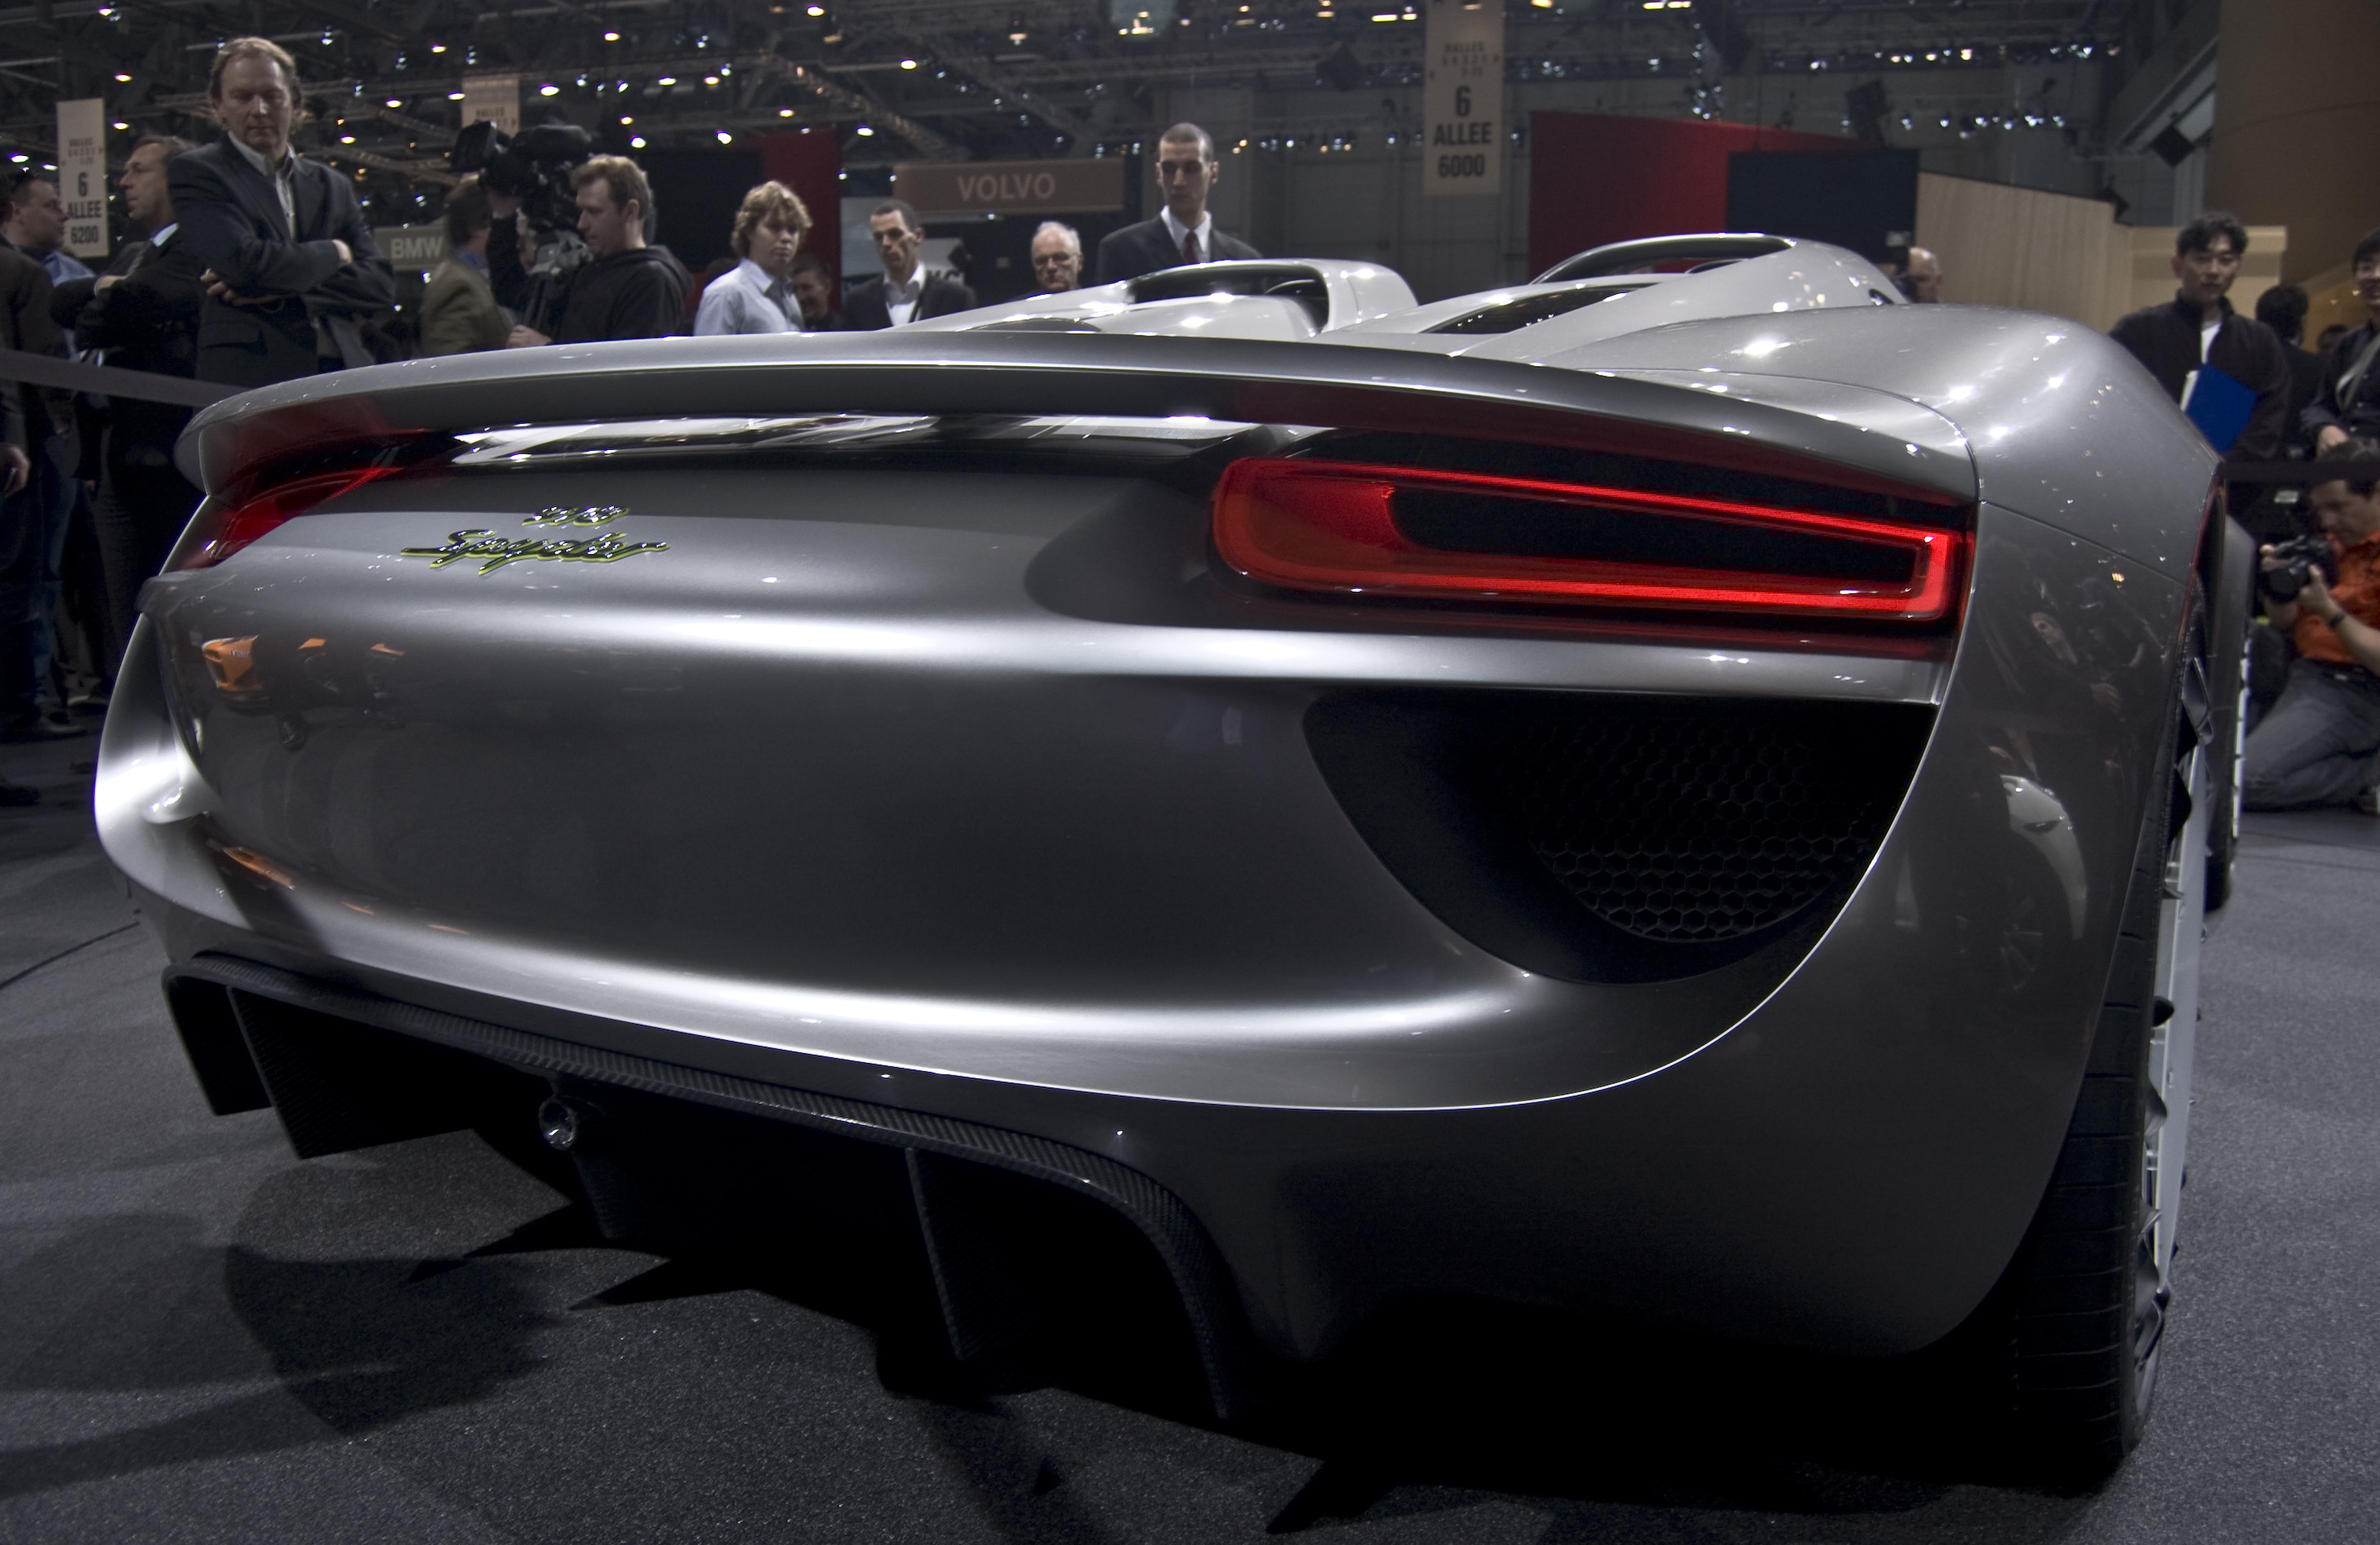 file porsche 918 spyder wikimedia commons. Black Bedroom Furniture Sets. Home Design Ideas